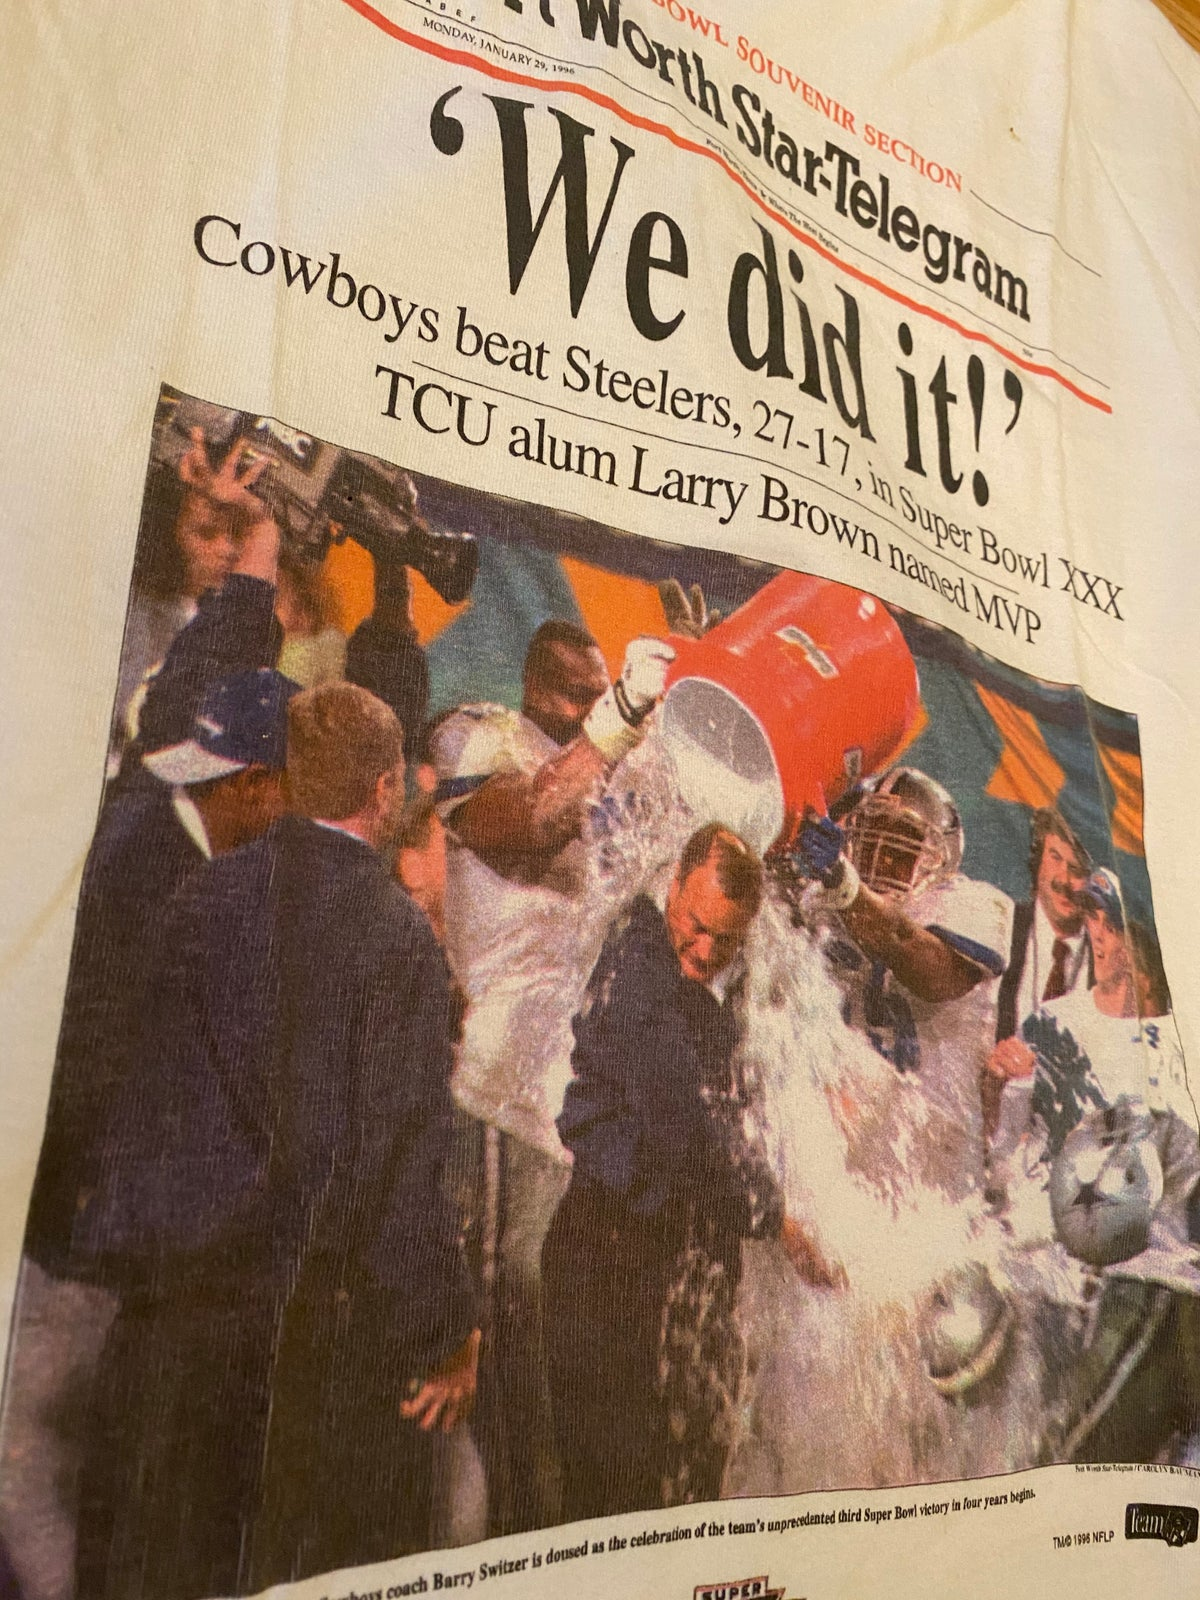 Image of 1996 Dallas Cowboys Super Bowl Newspaper Tee